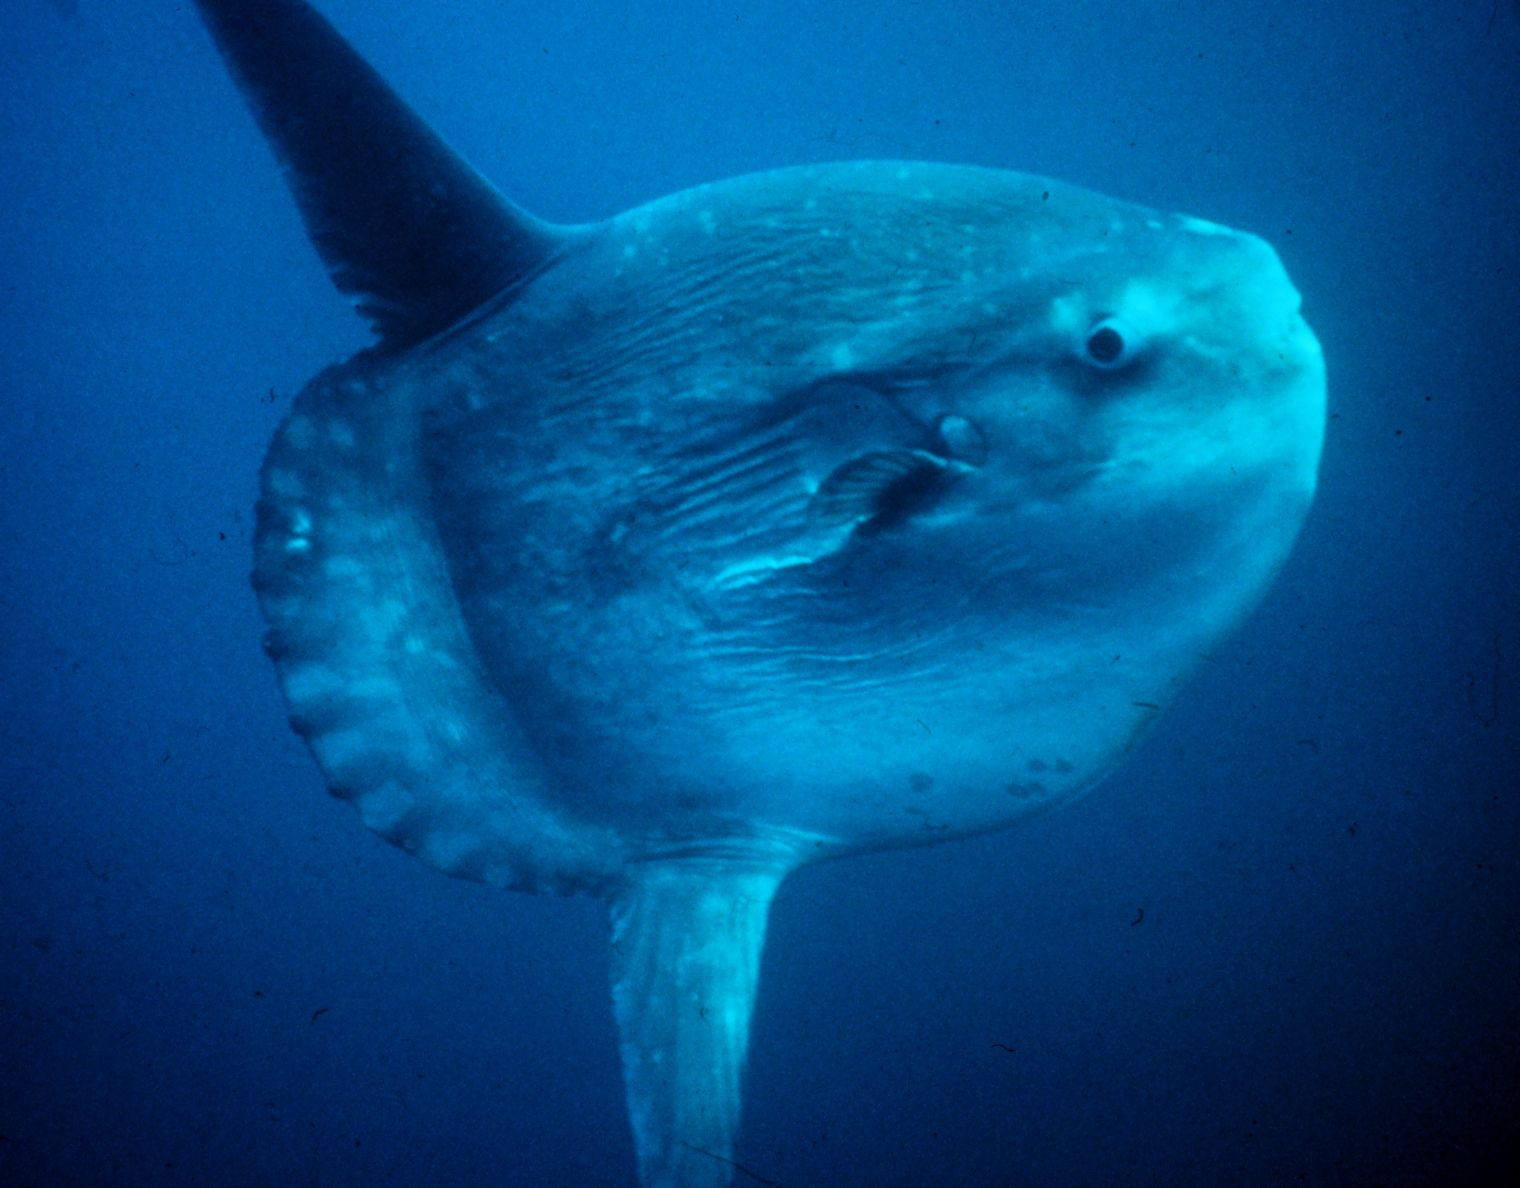 the largest ocean sunfish on record weighed more than a minivan